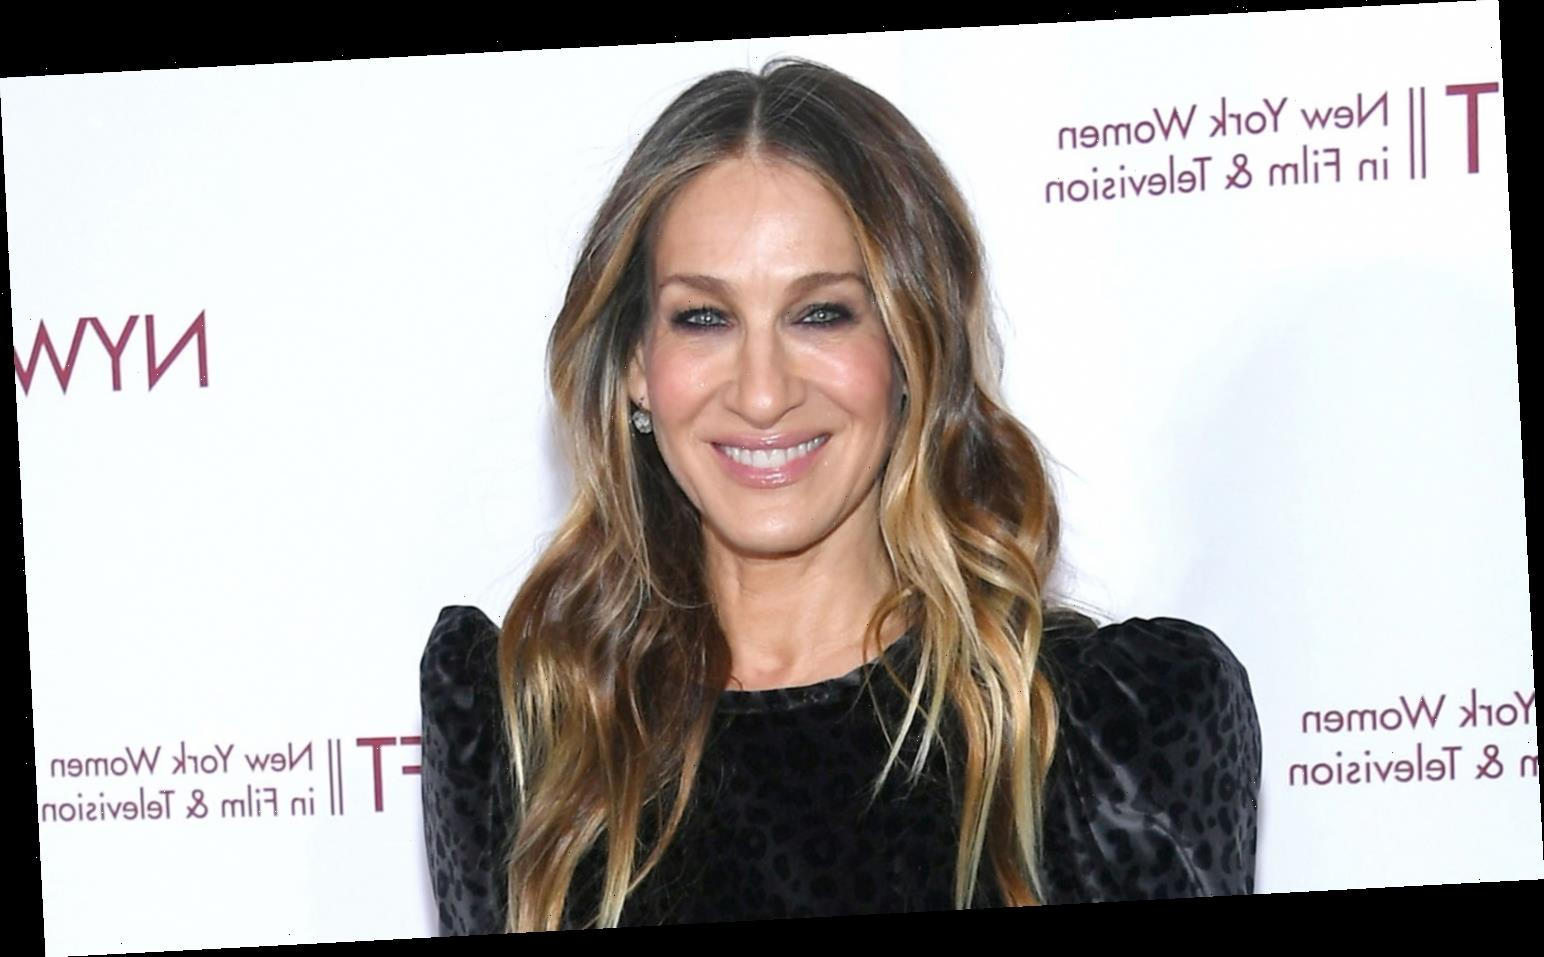 Sarah Jessica Parker Explains Why She Hasn't Bought a Cup of Coffee in Over 20 Years